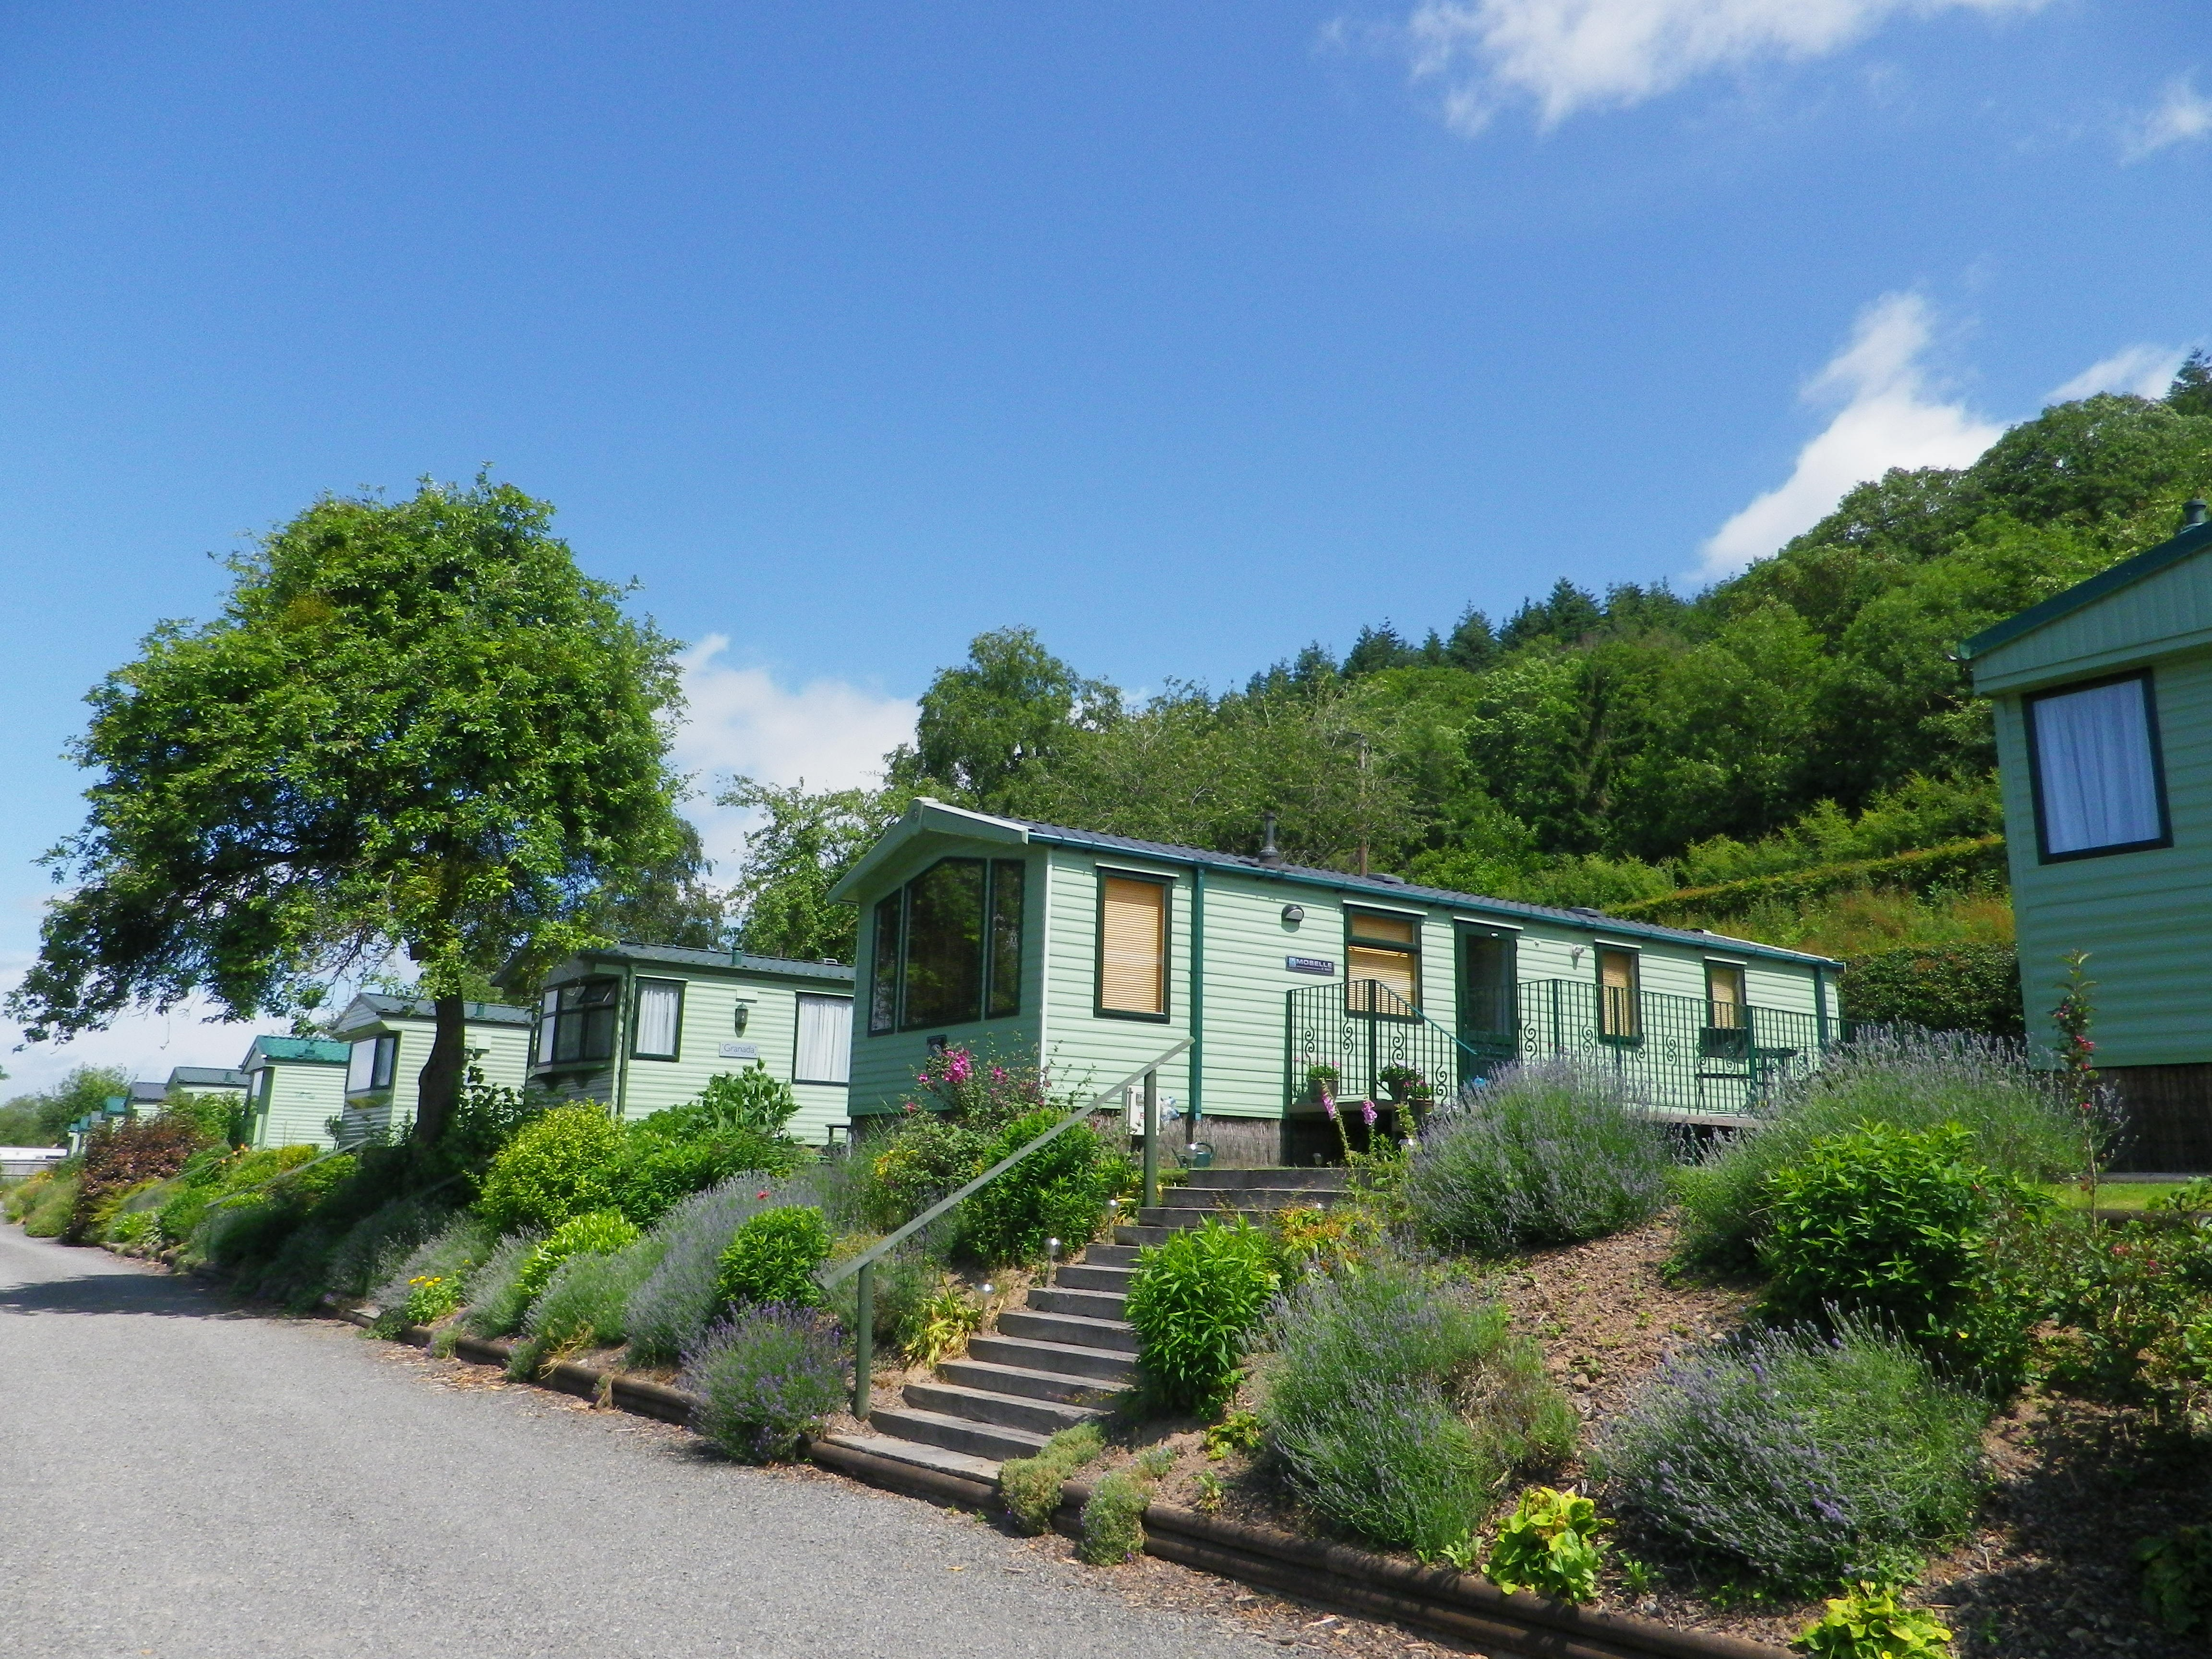 Static Caravans at Lucksall Caravan & Camping Holiday Park.